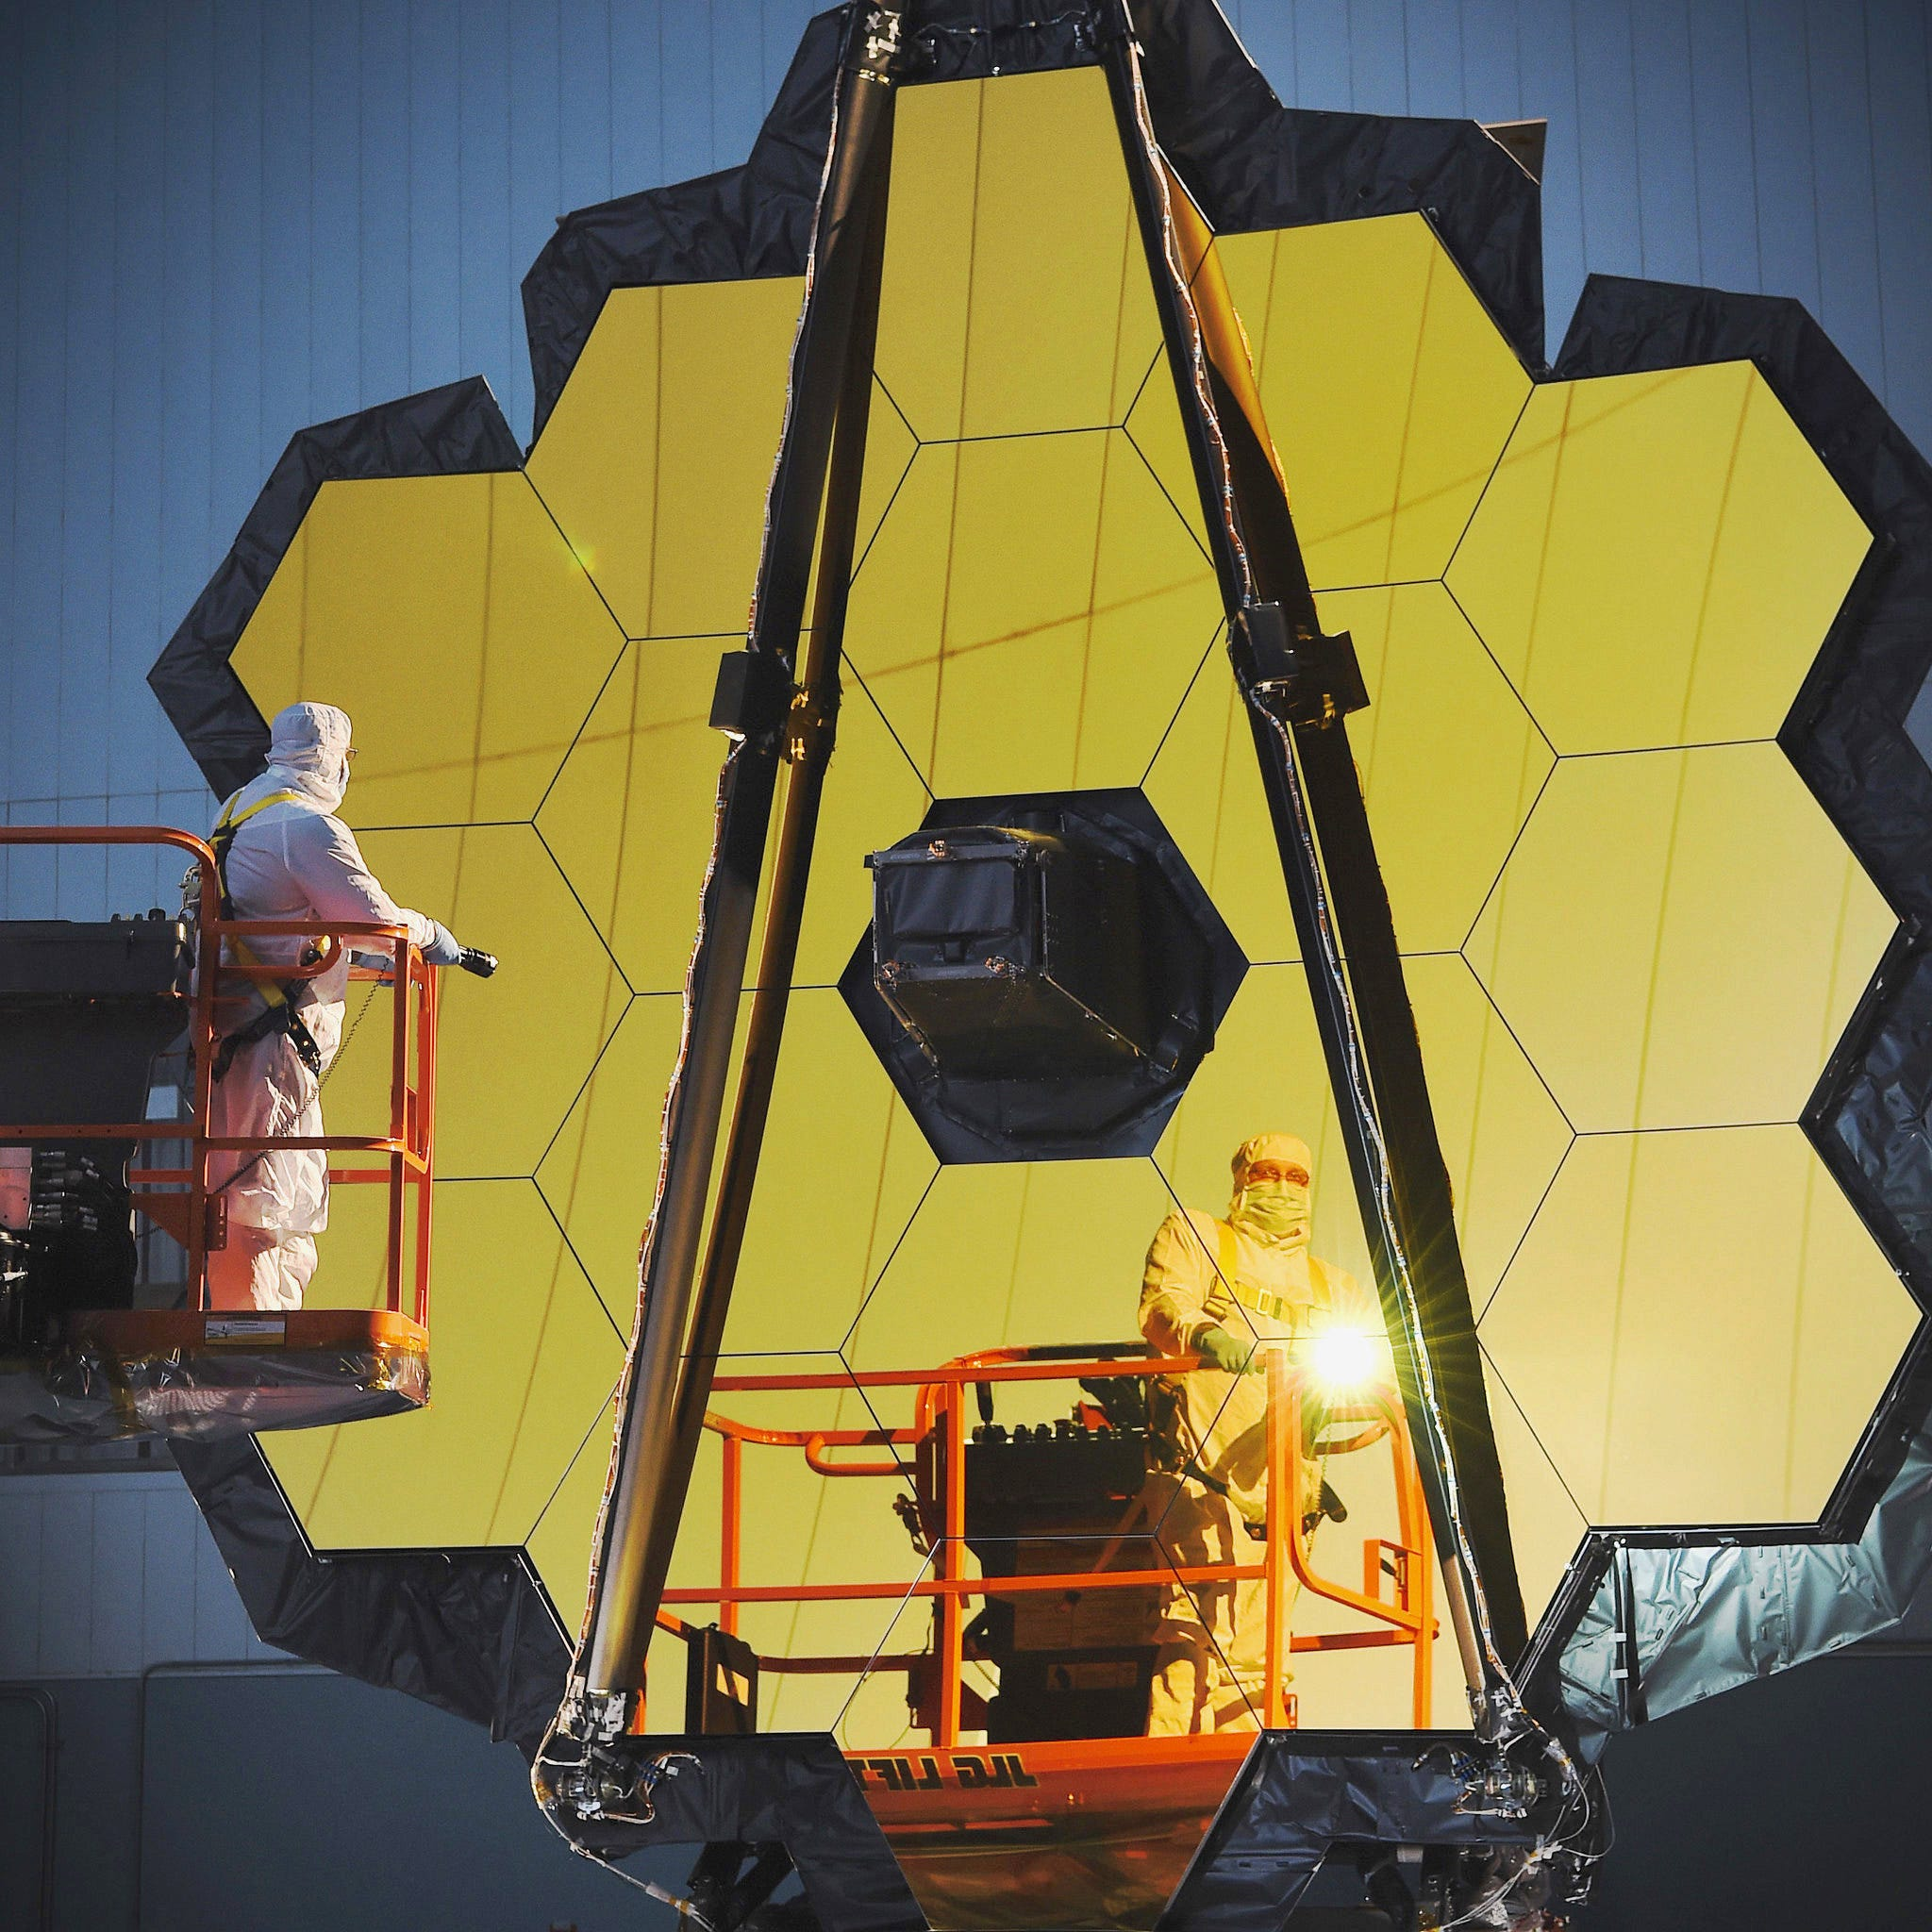 Finally the James Webb space telescope has a (possible) launch date!